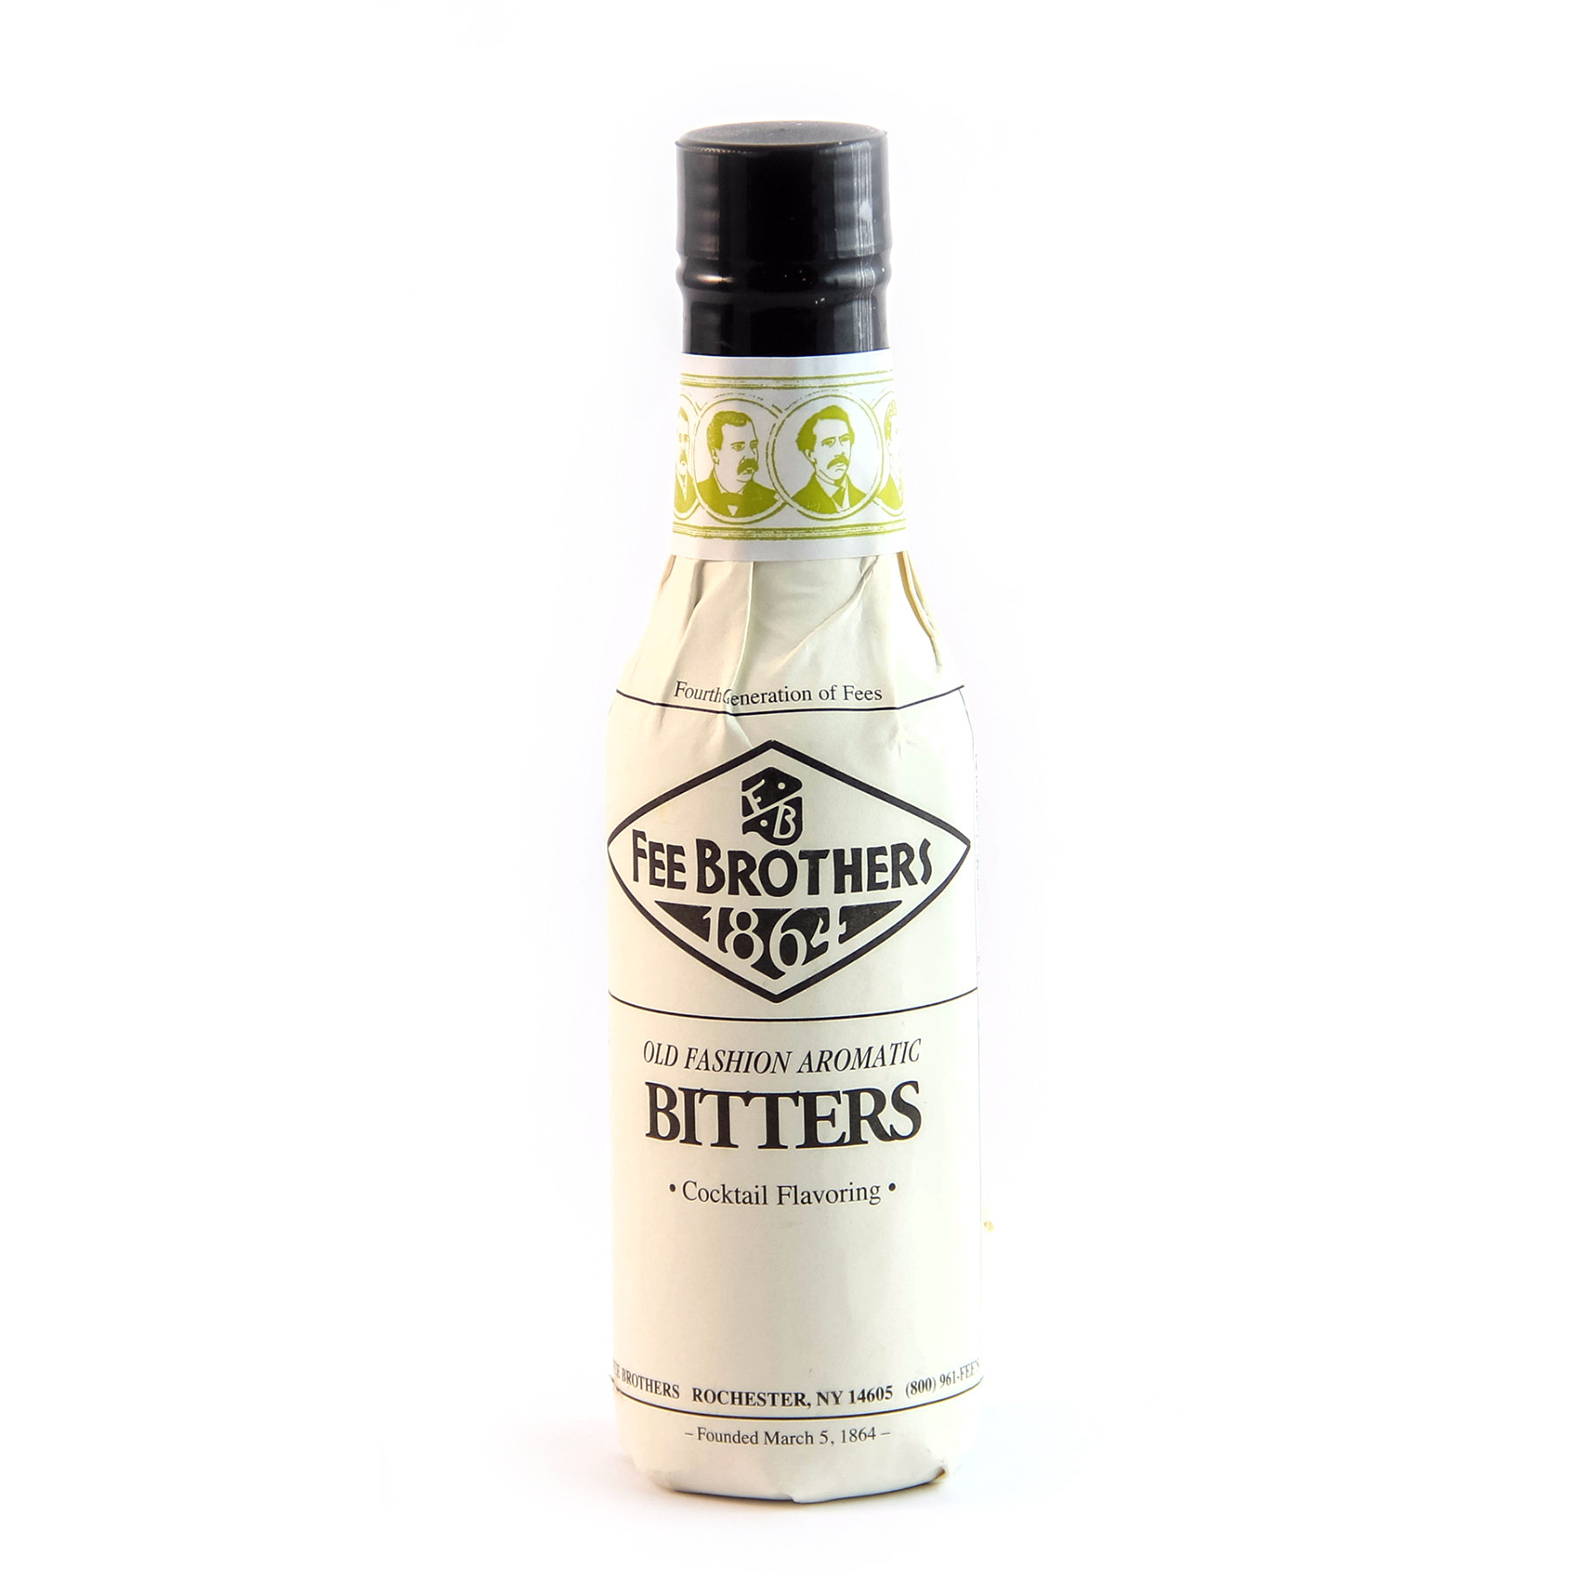 Fee Brothers 1864 Old Fashion Aromatic Bitters - Bitter Aromatico - 15cl - Fee Brothers